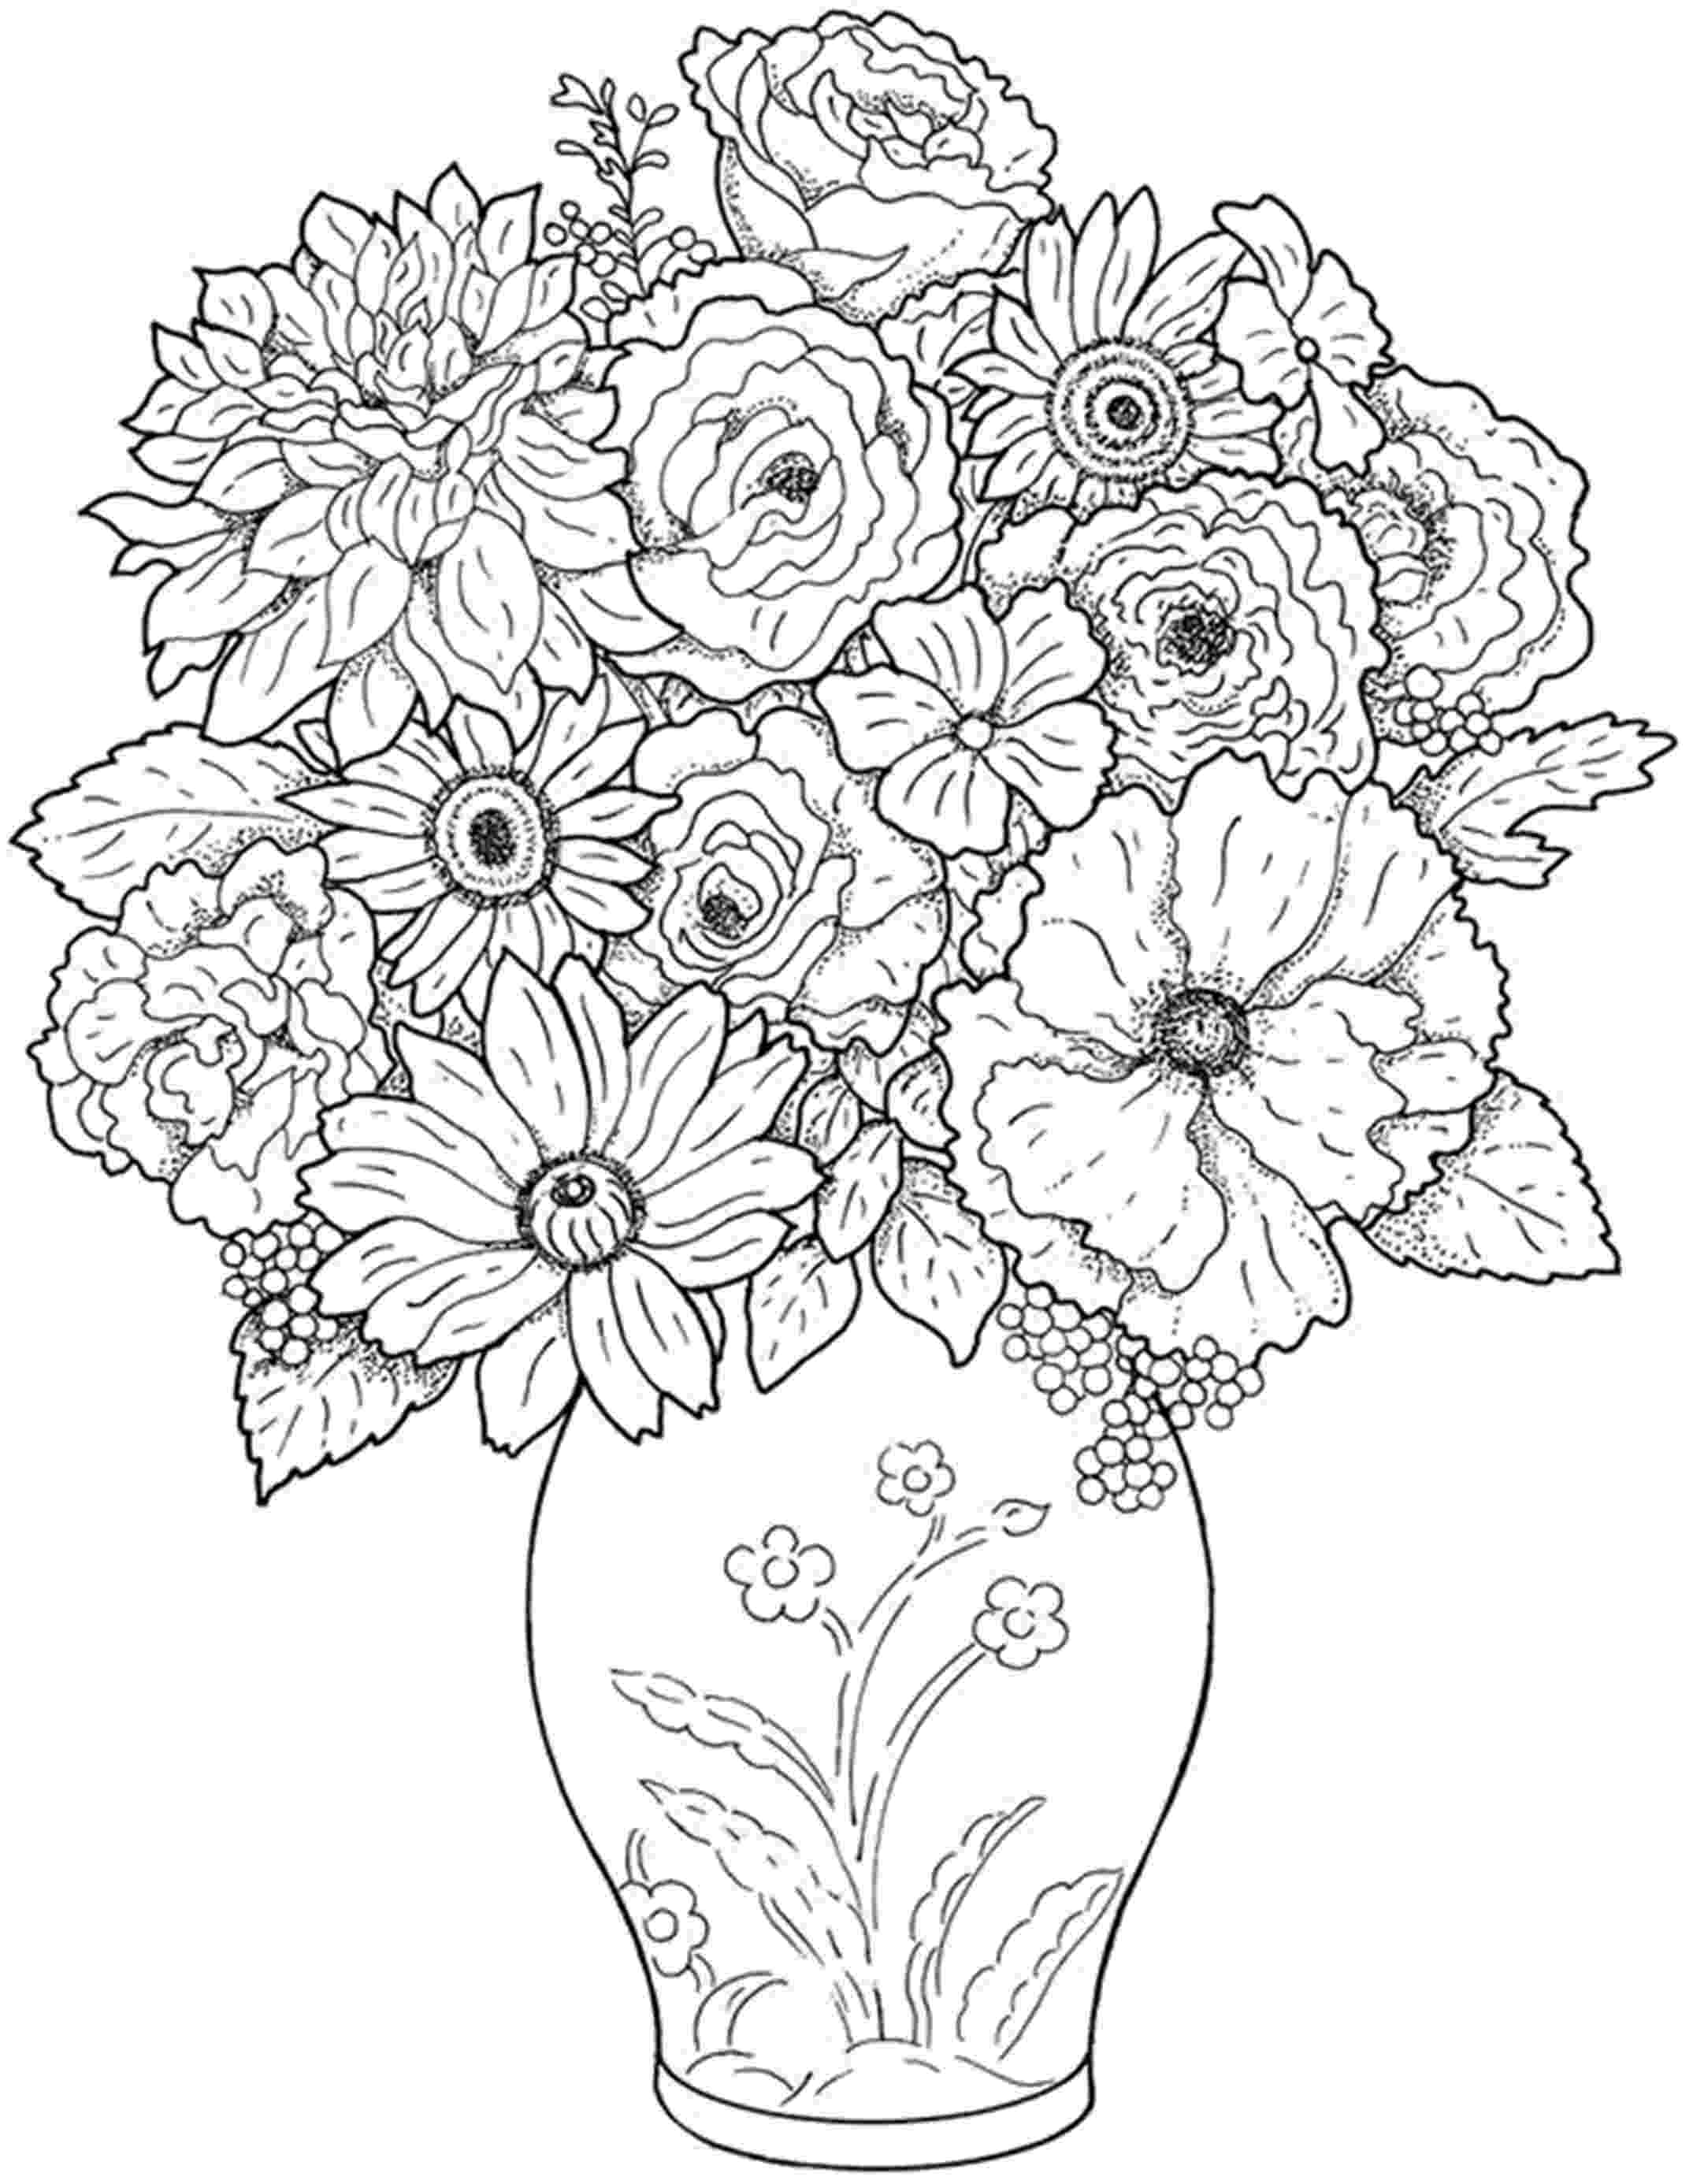 printable flower coloring pages for adults pin on muhammad azeem adults for pages coloring printable flower